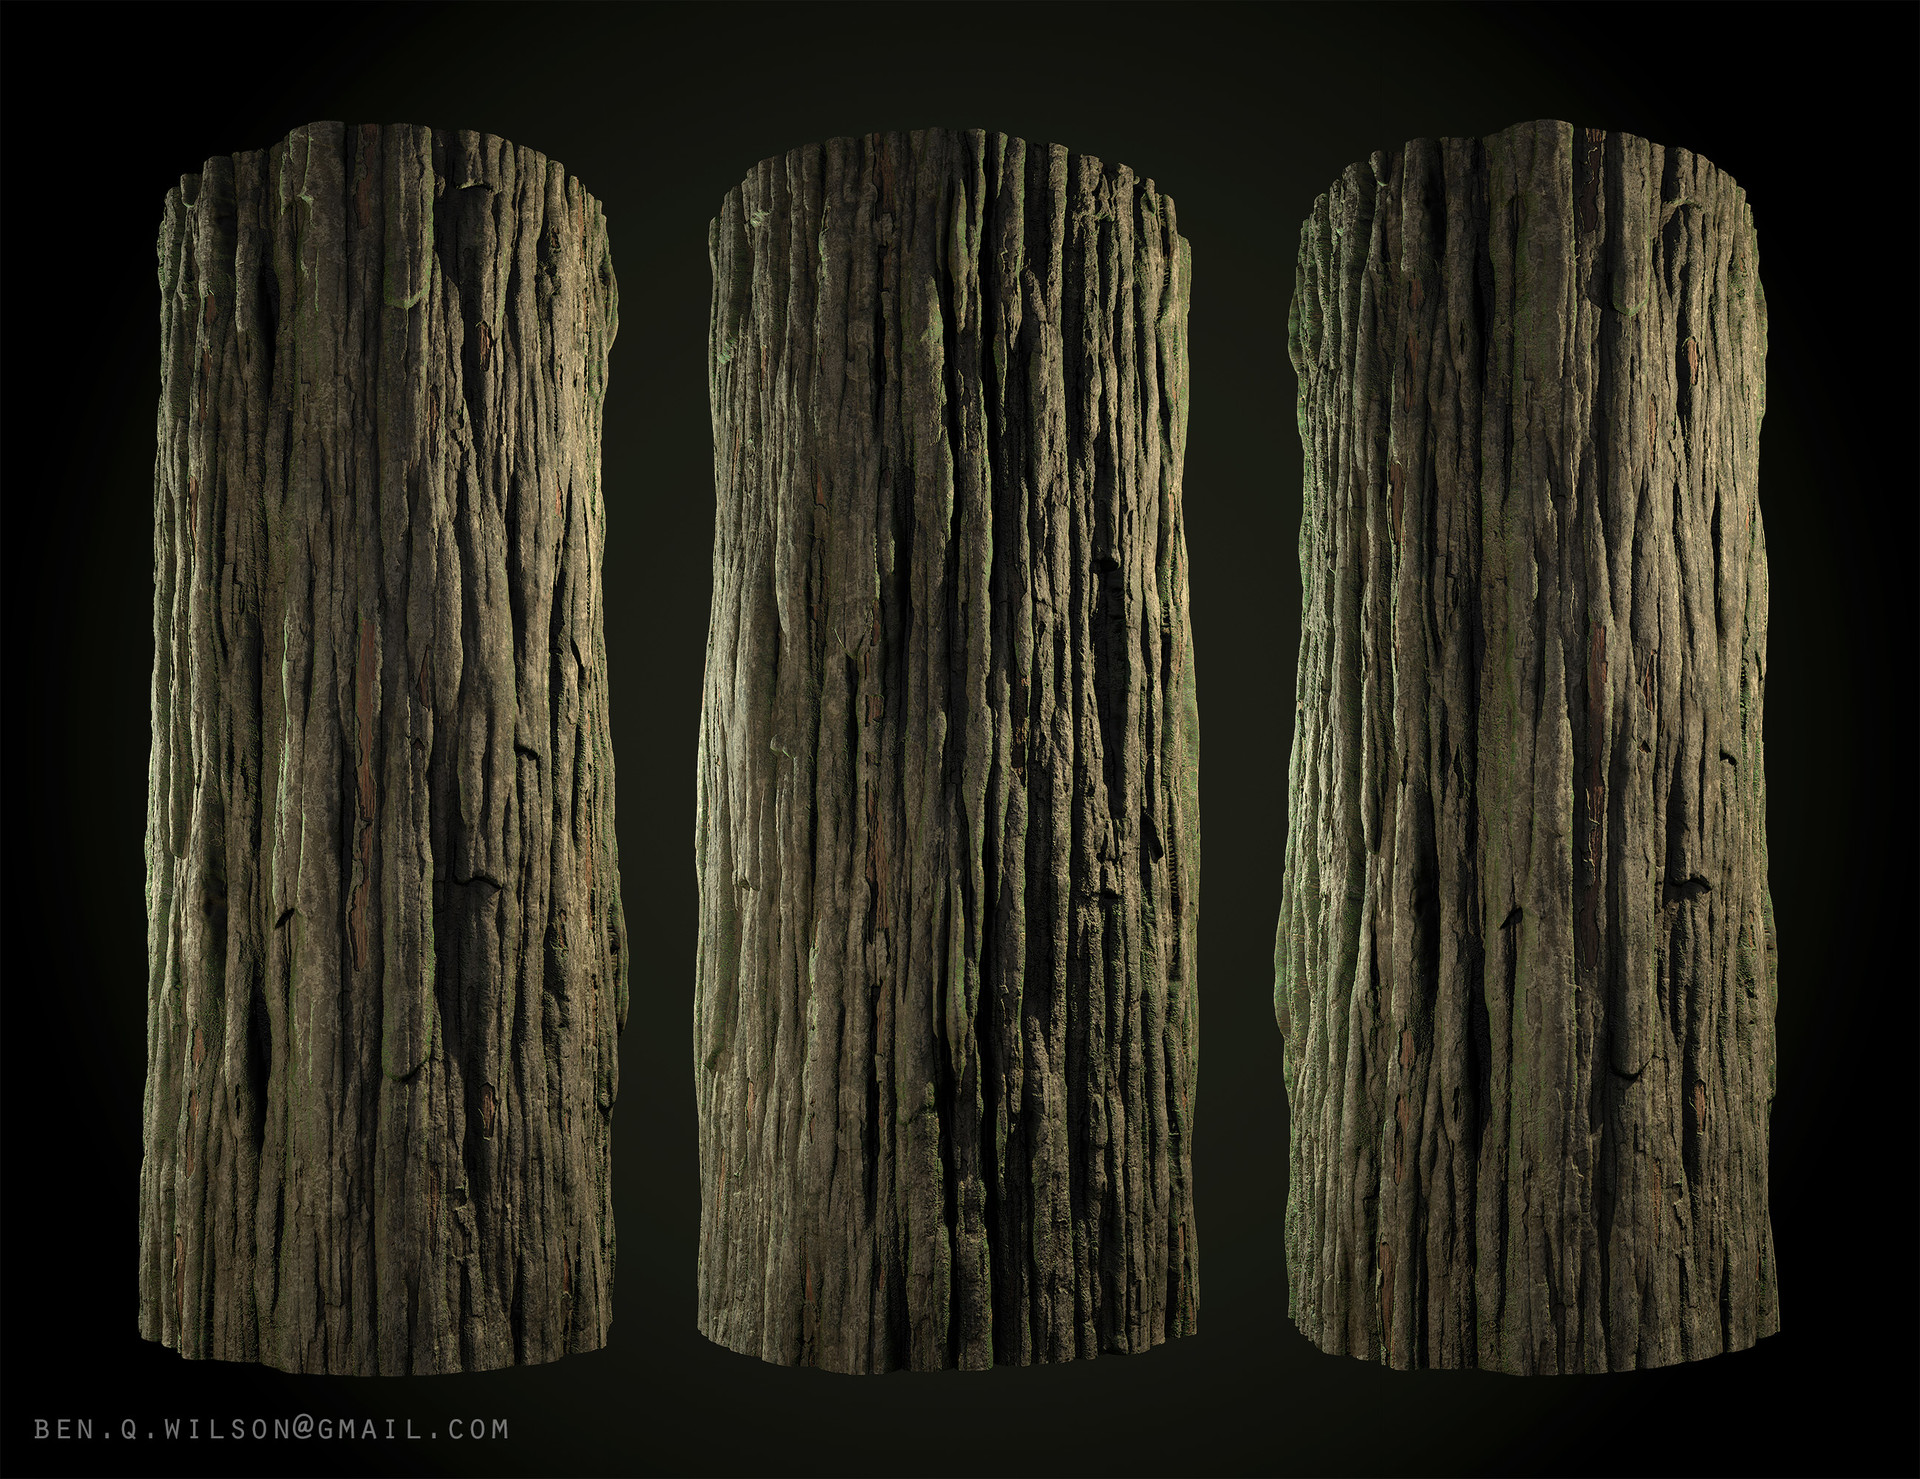 Ben wilson redwood bark a render